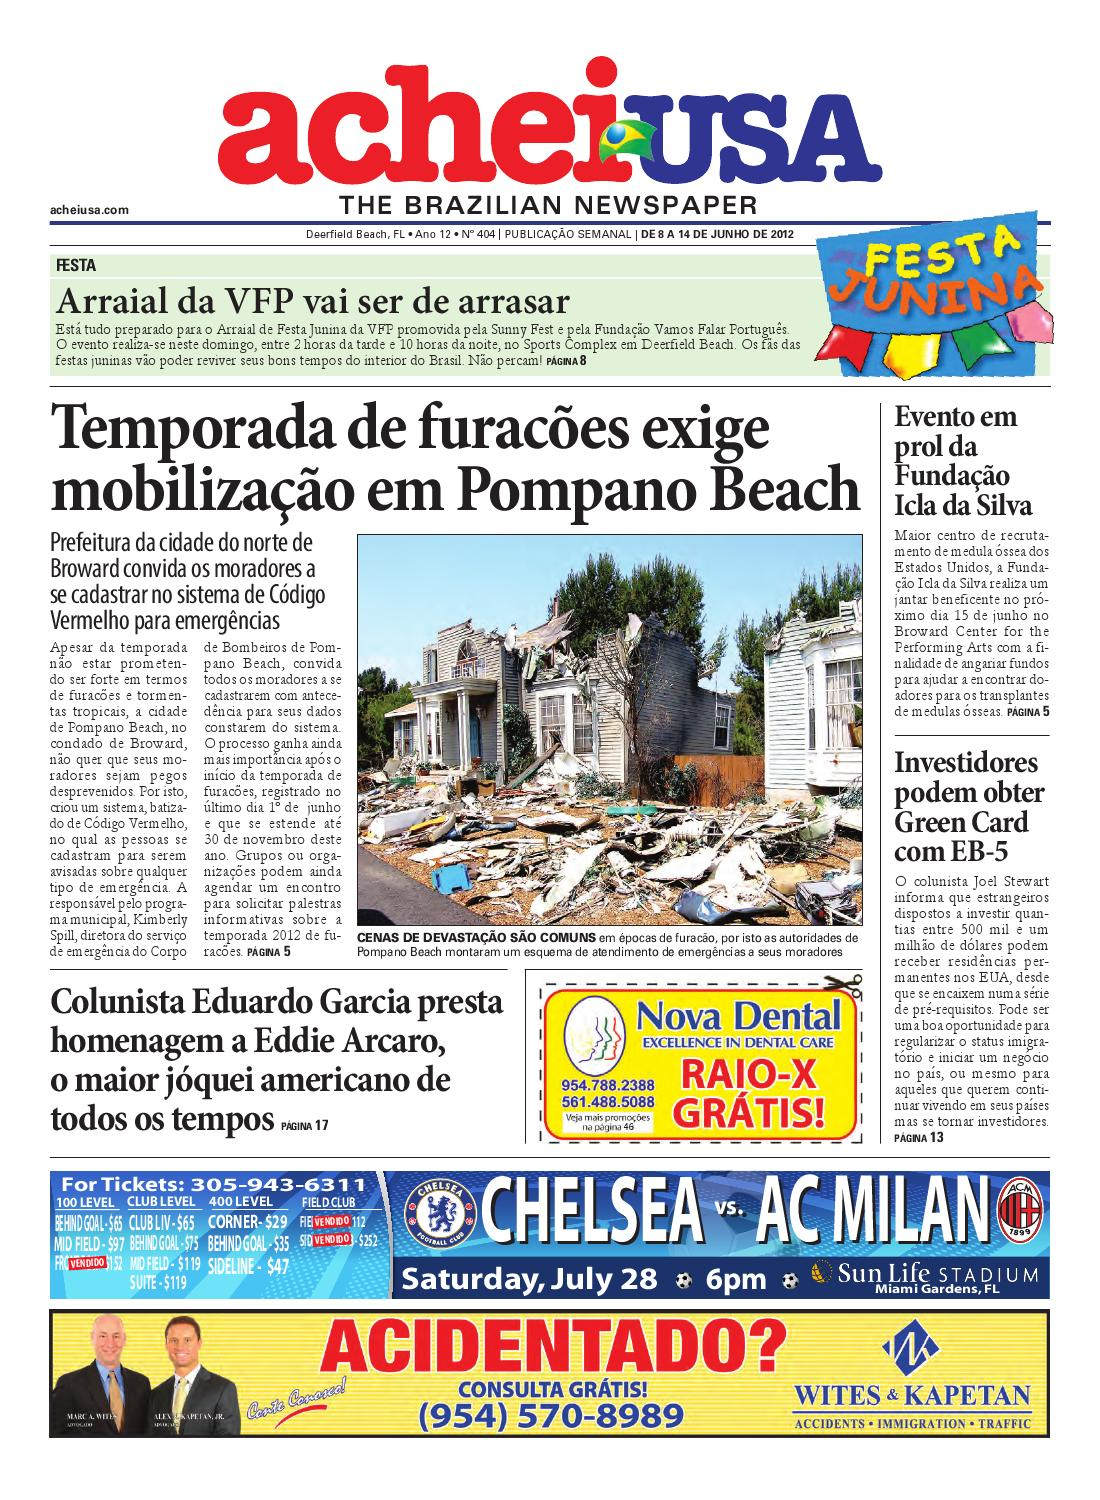 AcheiUSA 404 by AcheiUSA Newspaper - issuu c6dc195deb